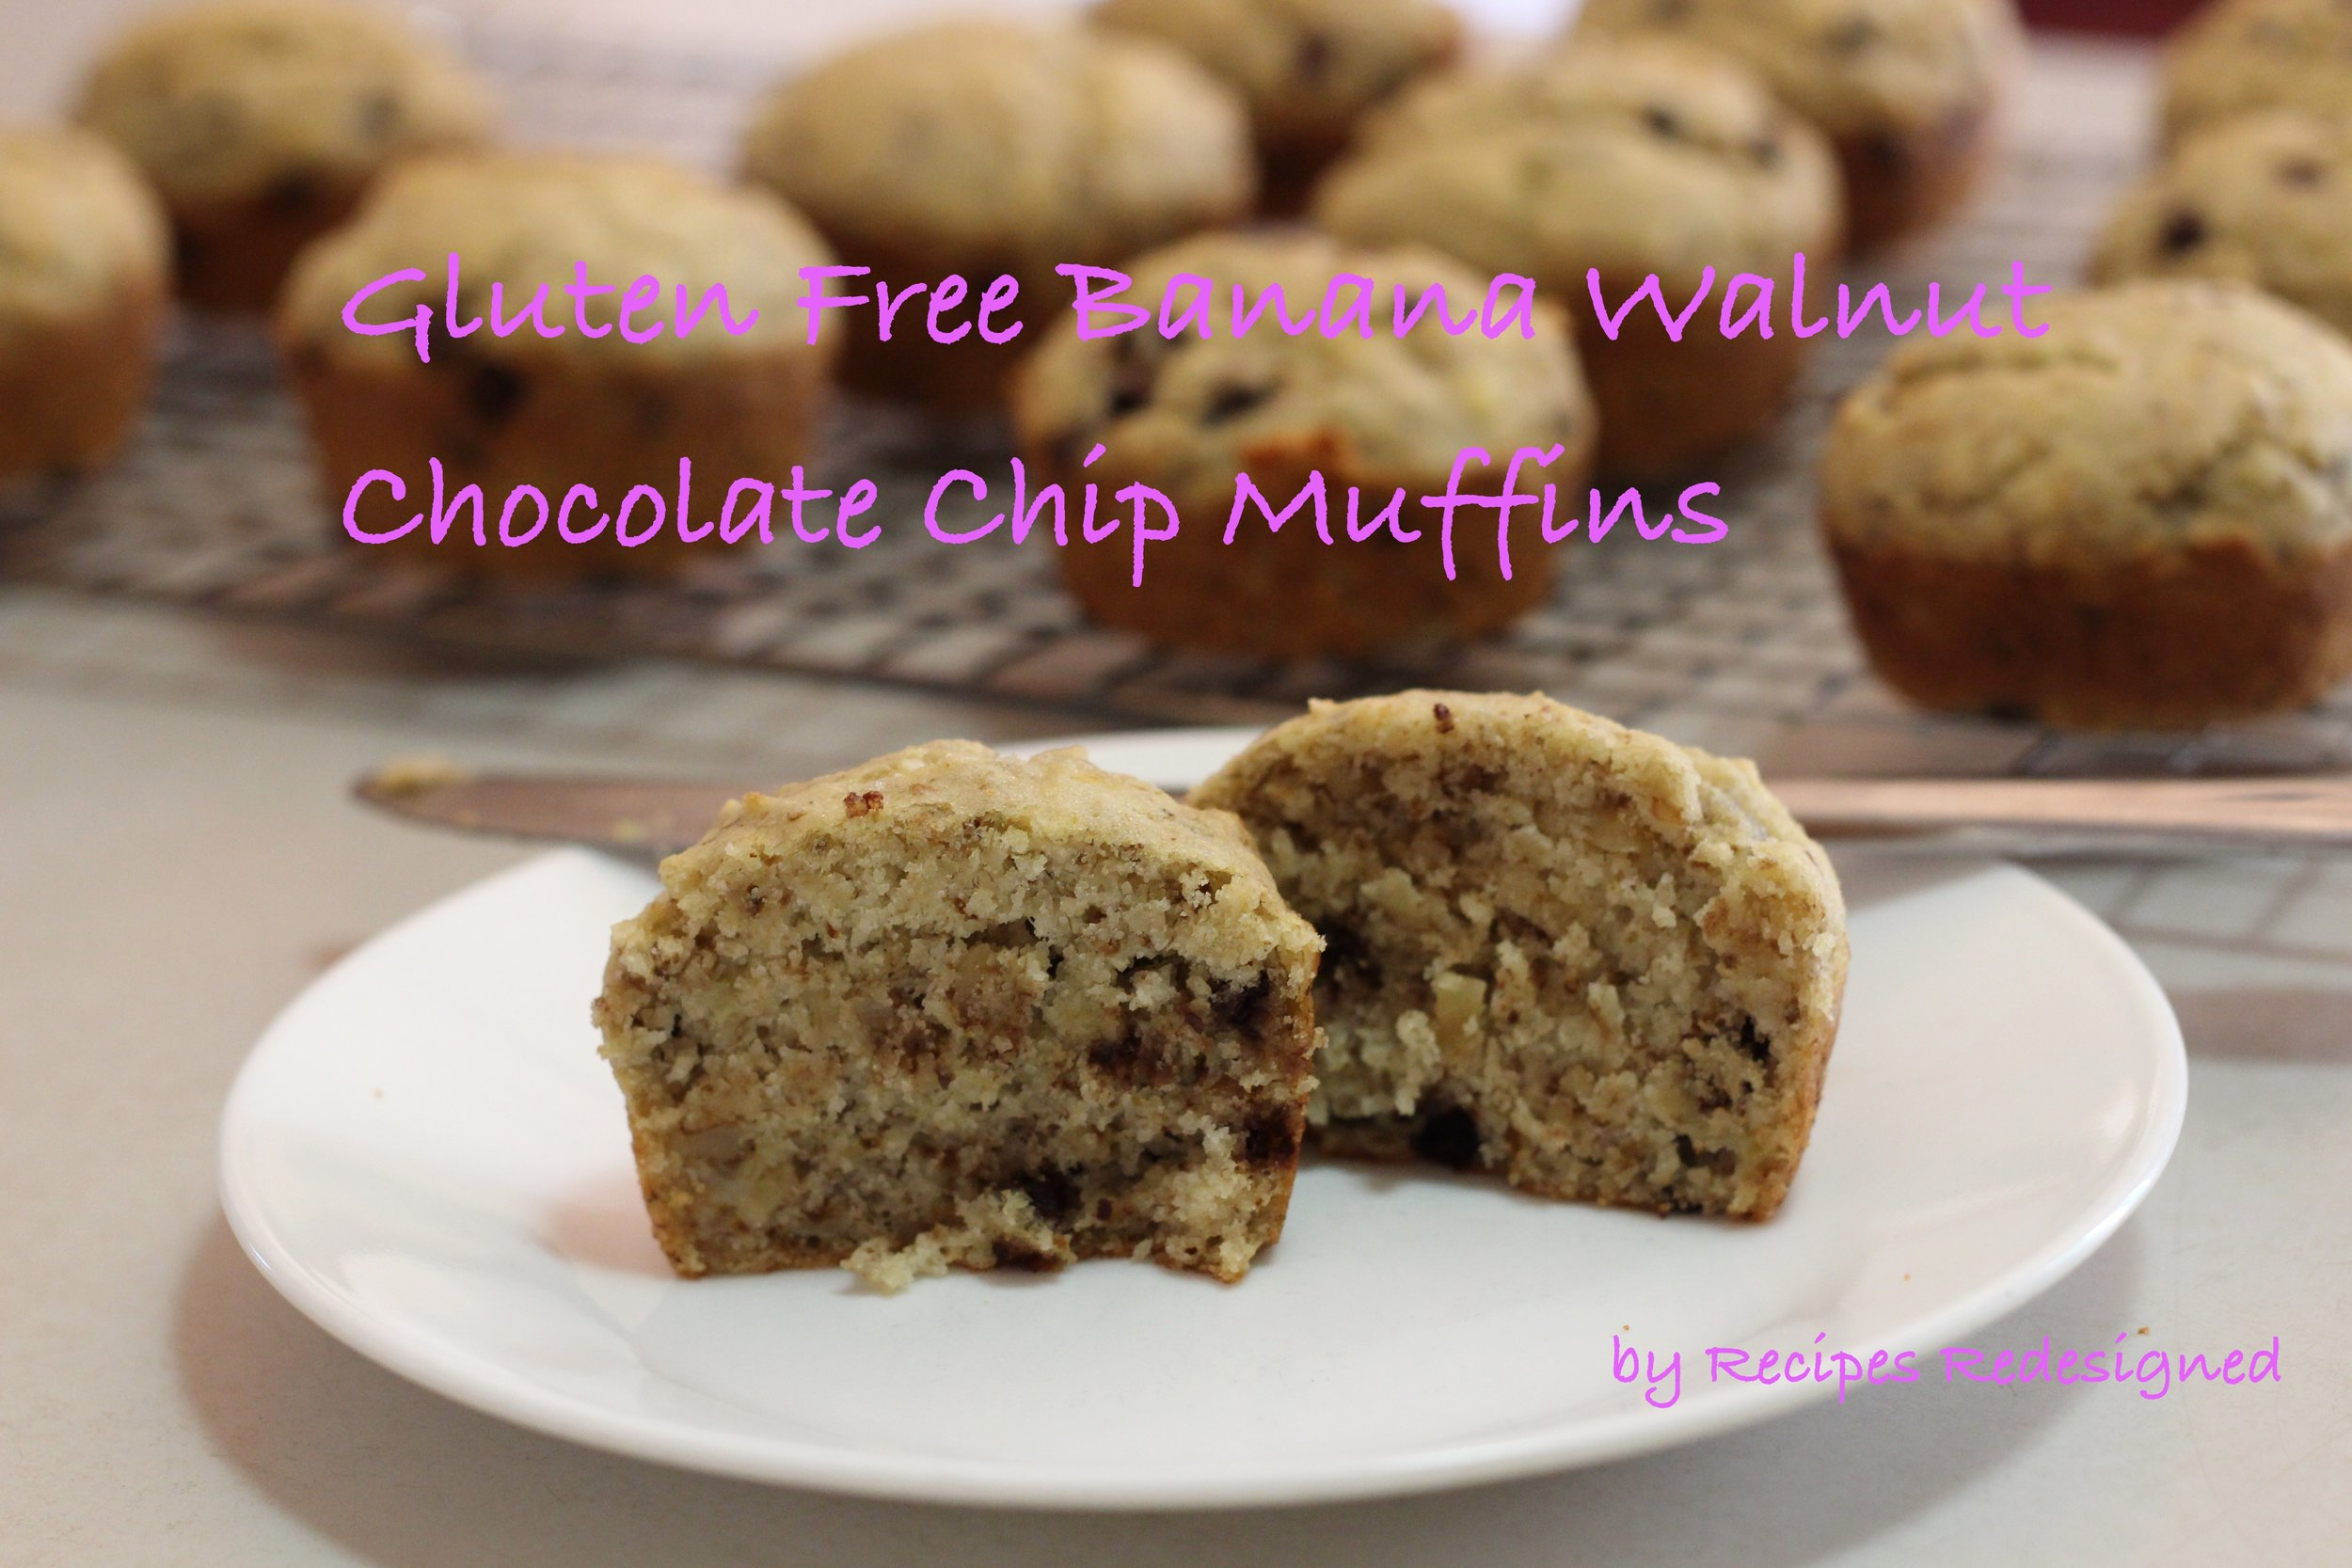 Gluten Free Banana Walnut Chocolate Chip Muffins